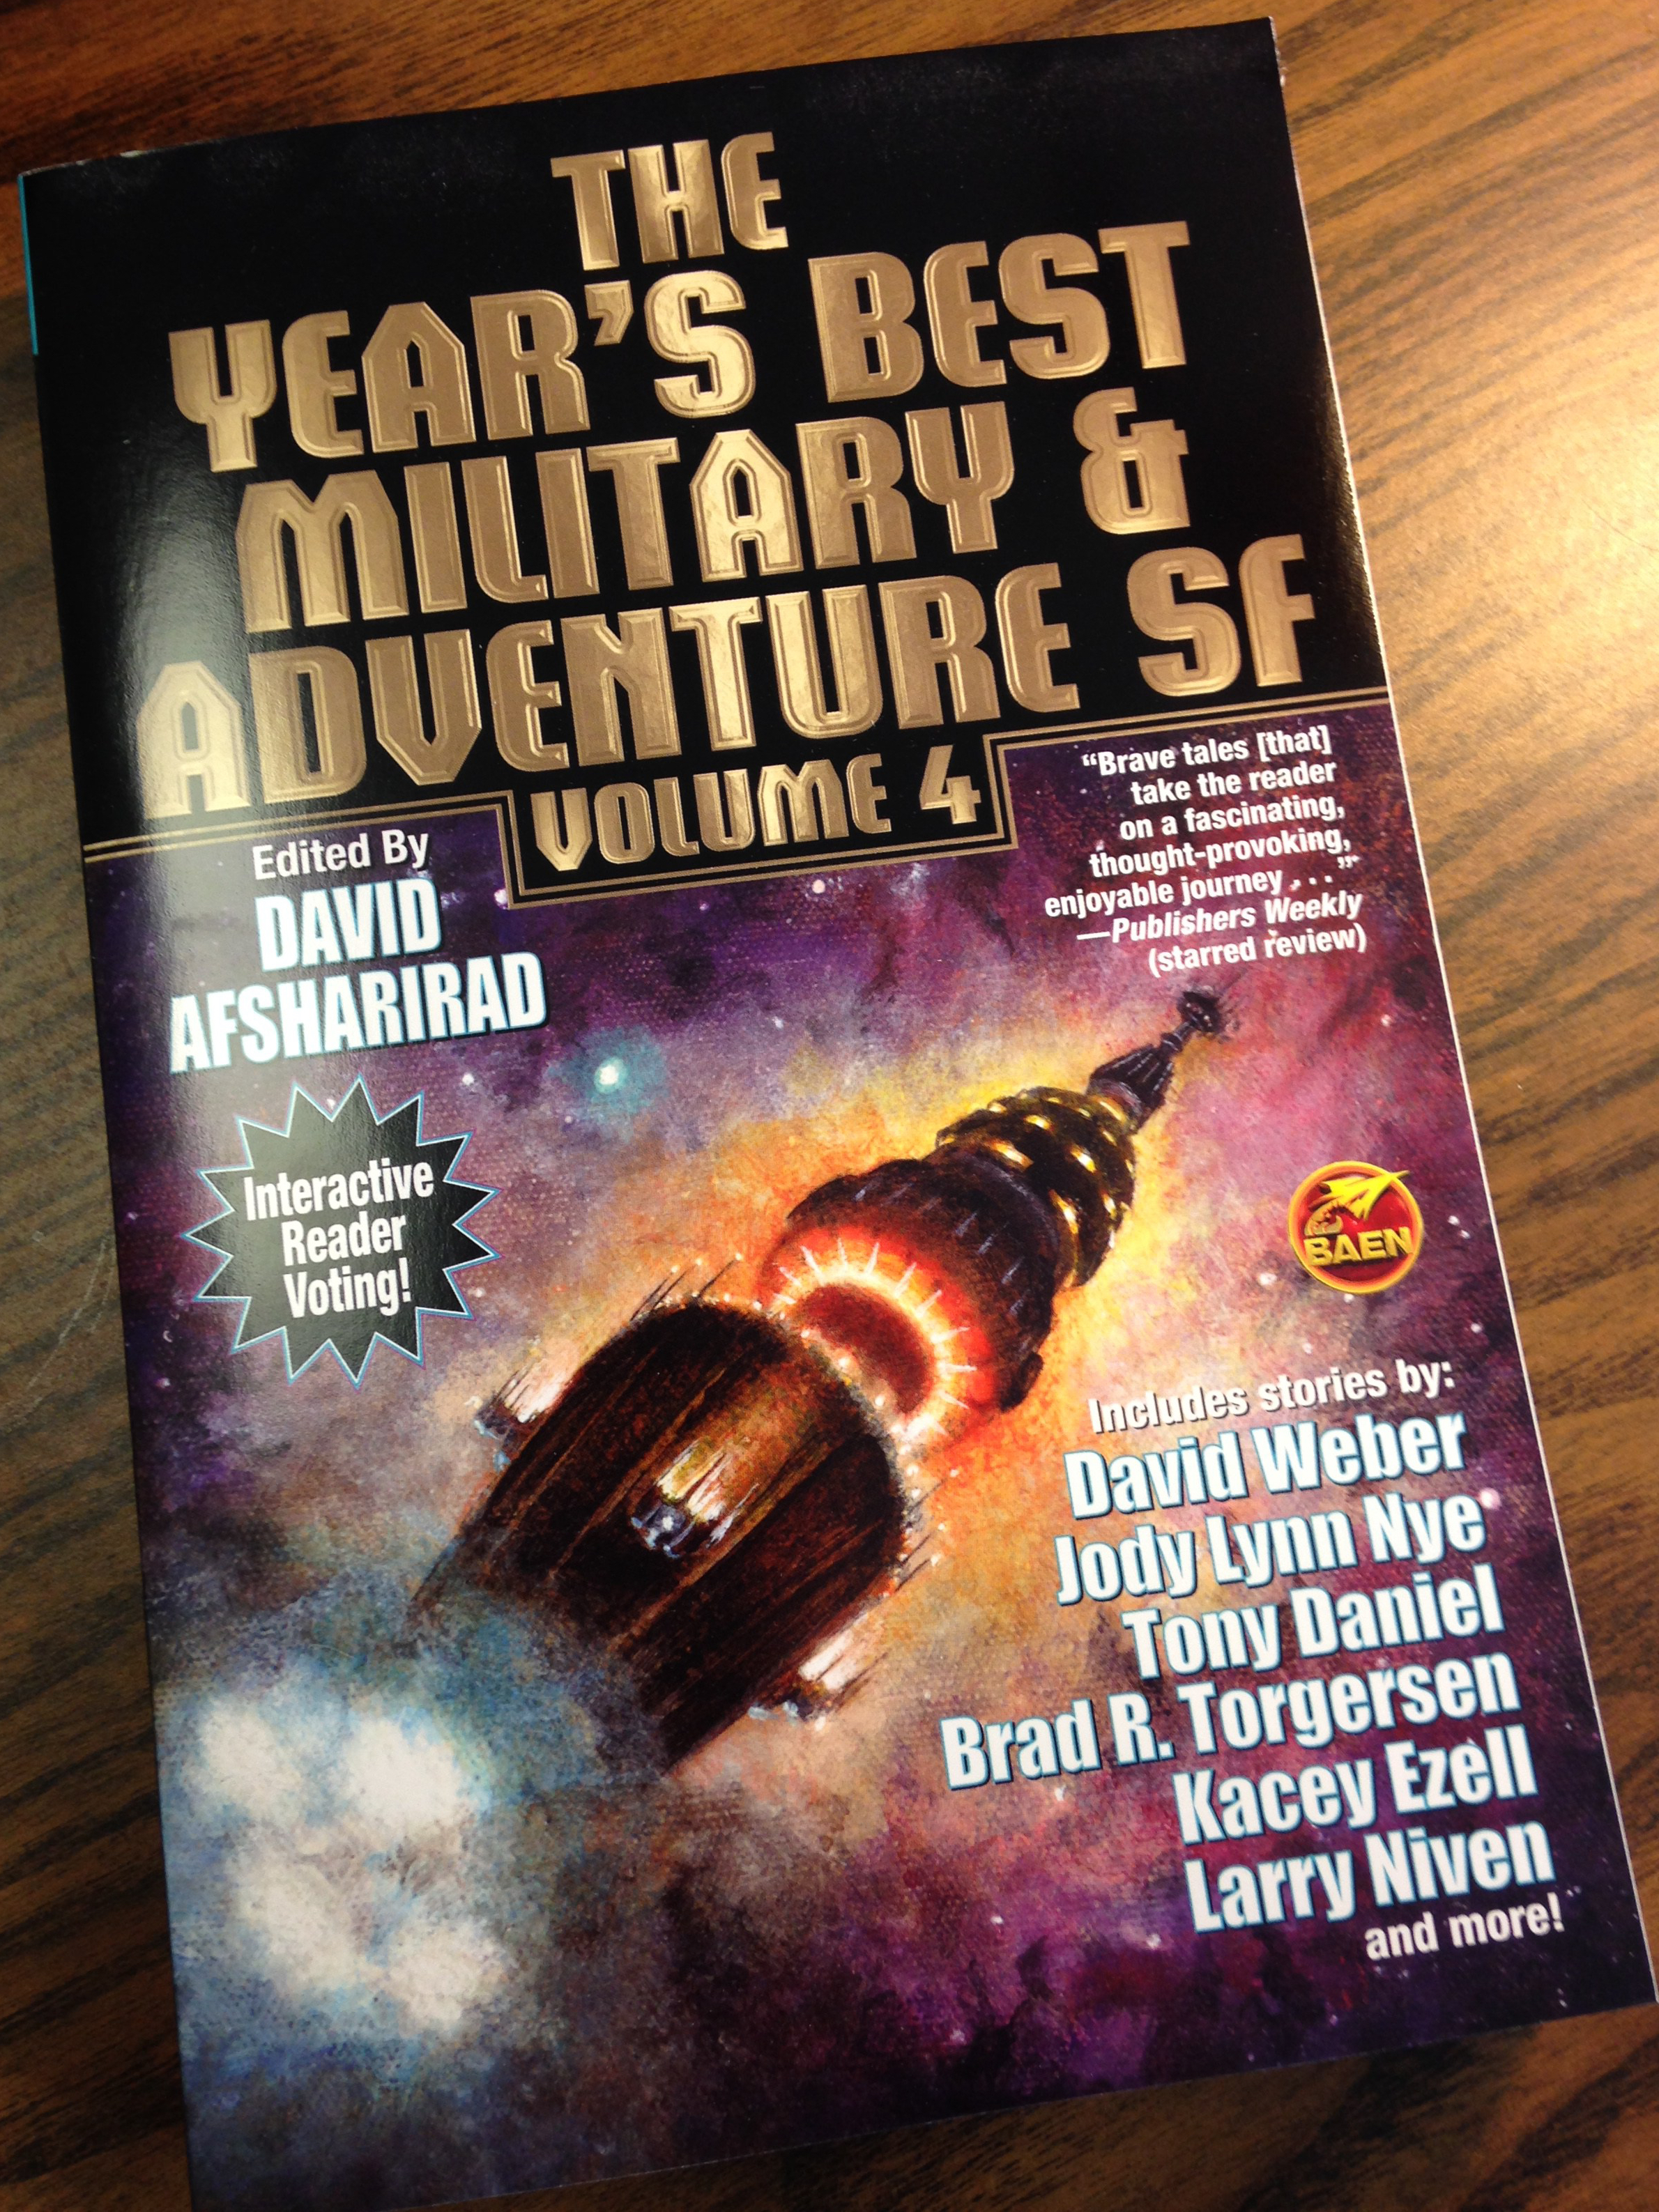 THE YEAR'S BEST MILITARY AND ADVENTURE SF VOLUME 4